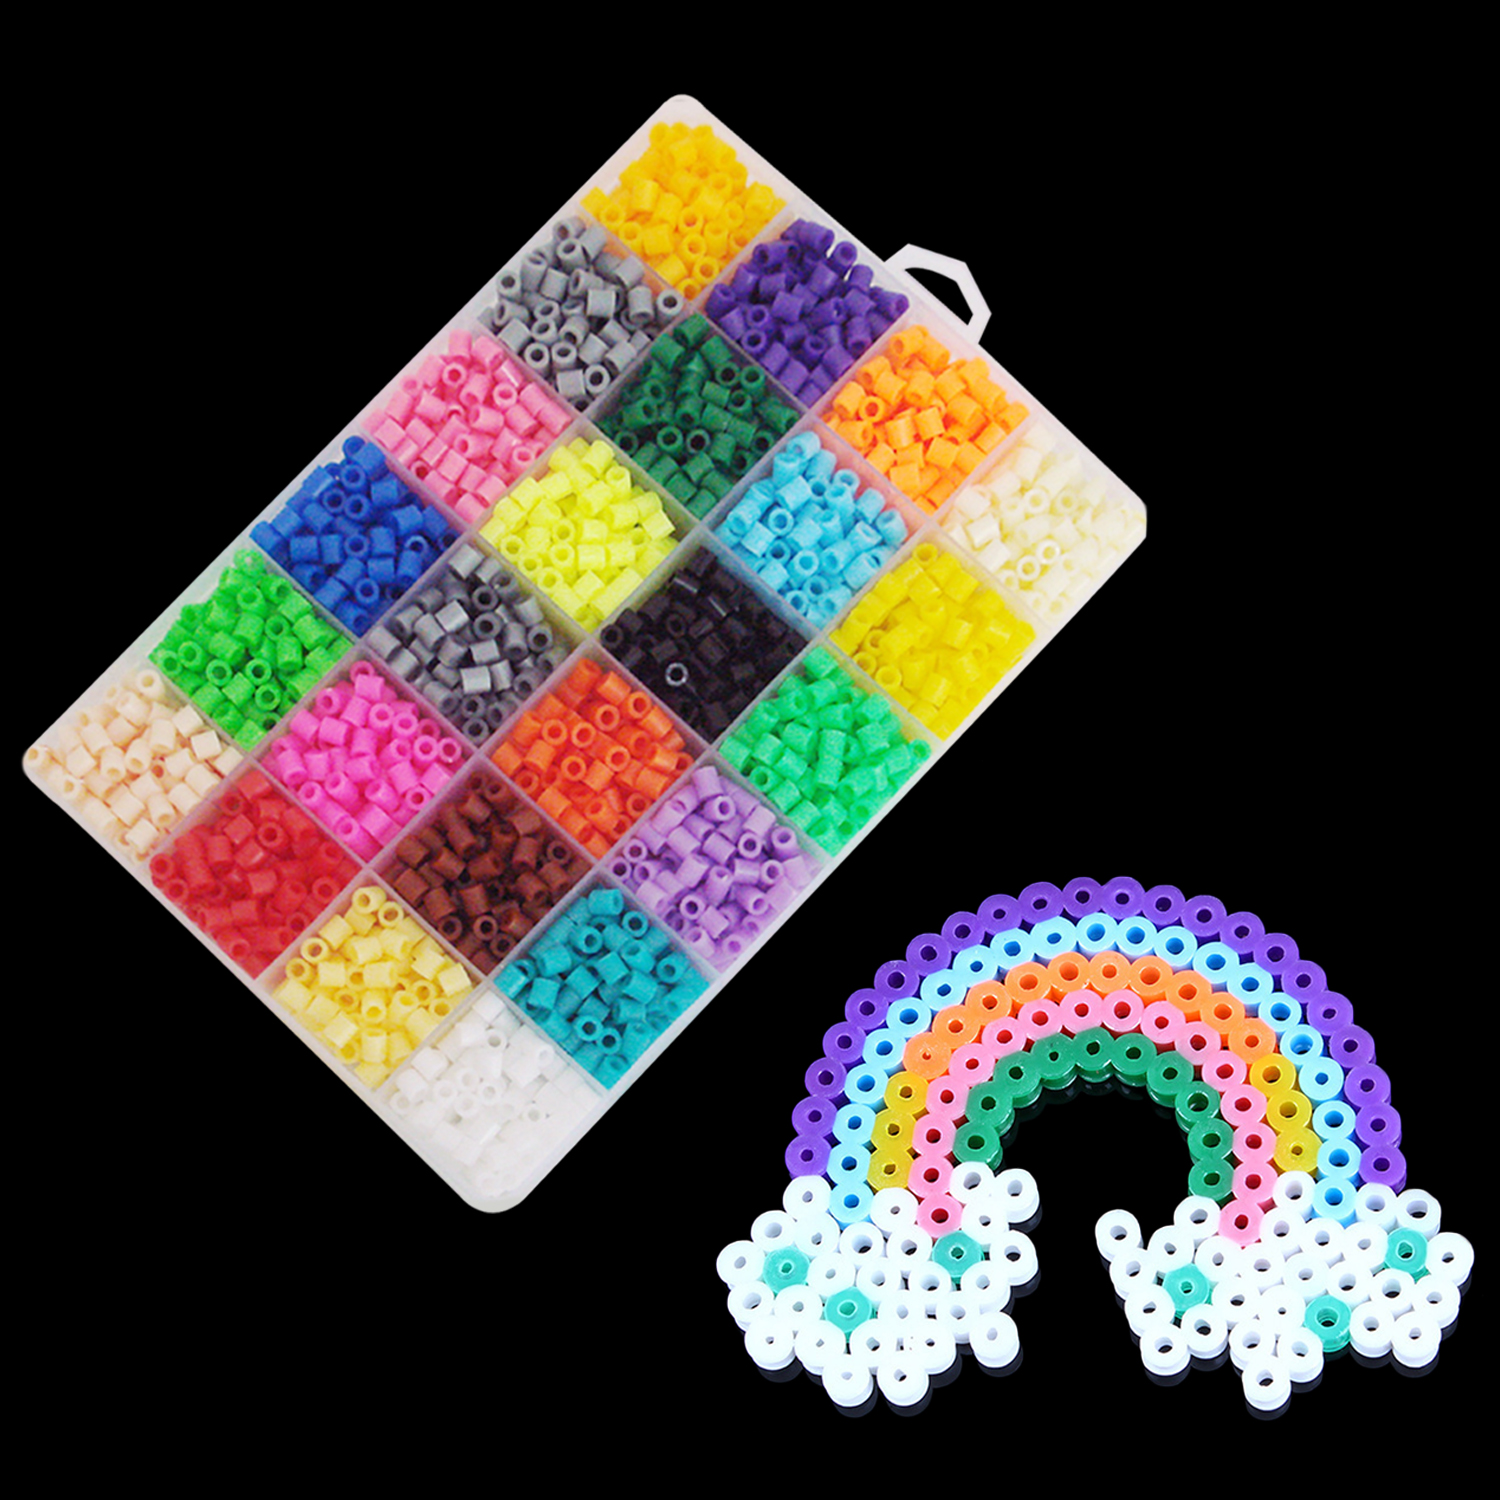 2400Pcs 24 Colors Fashion Ranbow Mini Fuse Beads Craft Beading Kit Toys Gifts Kids Adults DIY Handcraft Project Educational Toys